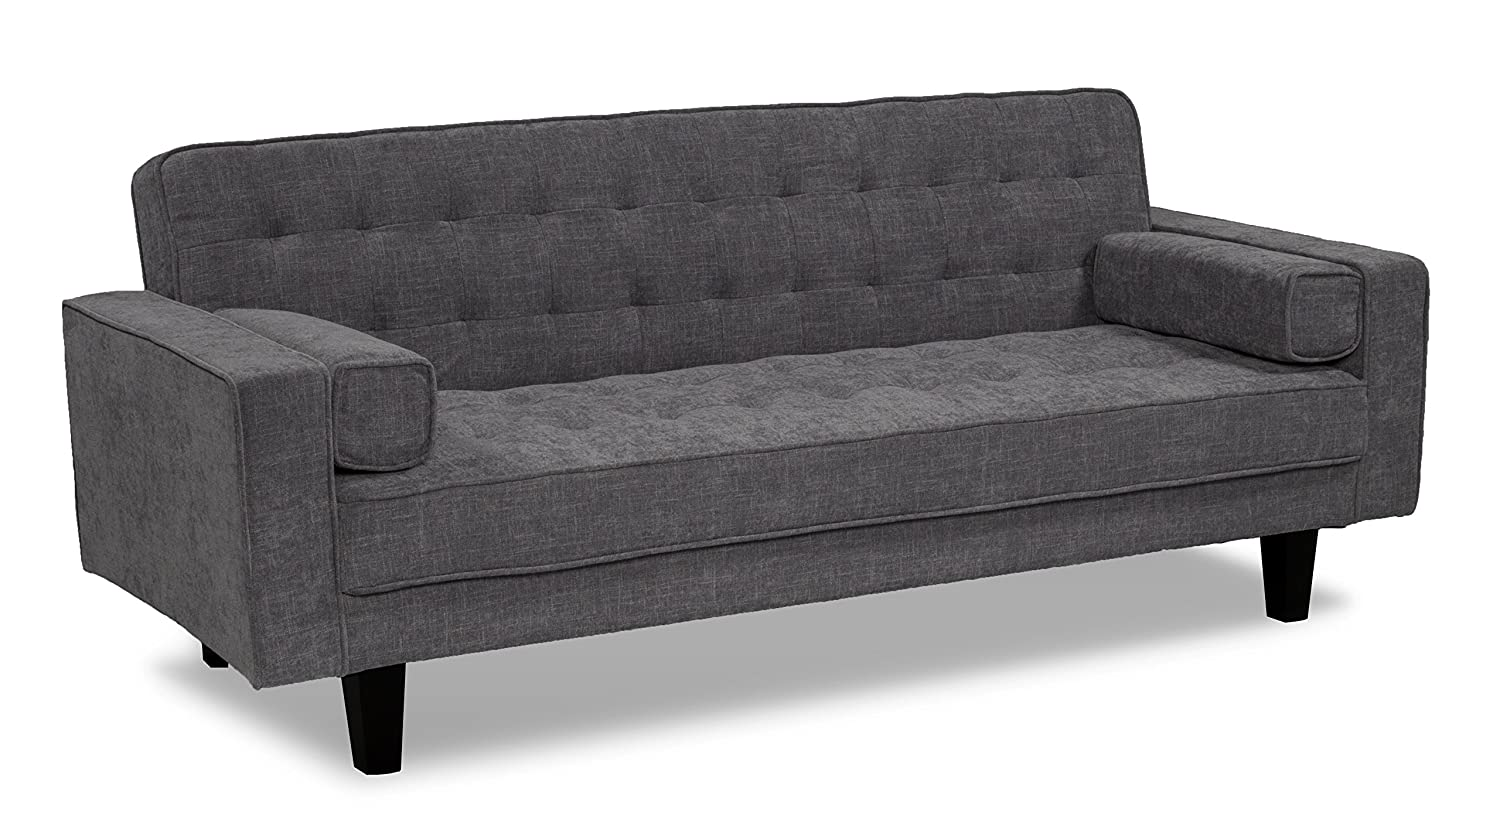 Amazon.com: Serta Dream Convertible Bahama Sofa, Steel ...